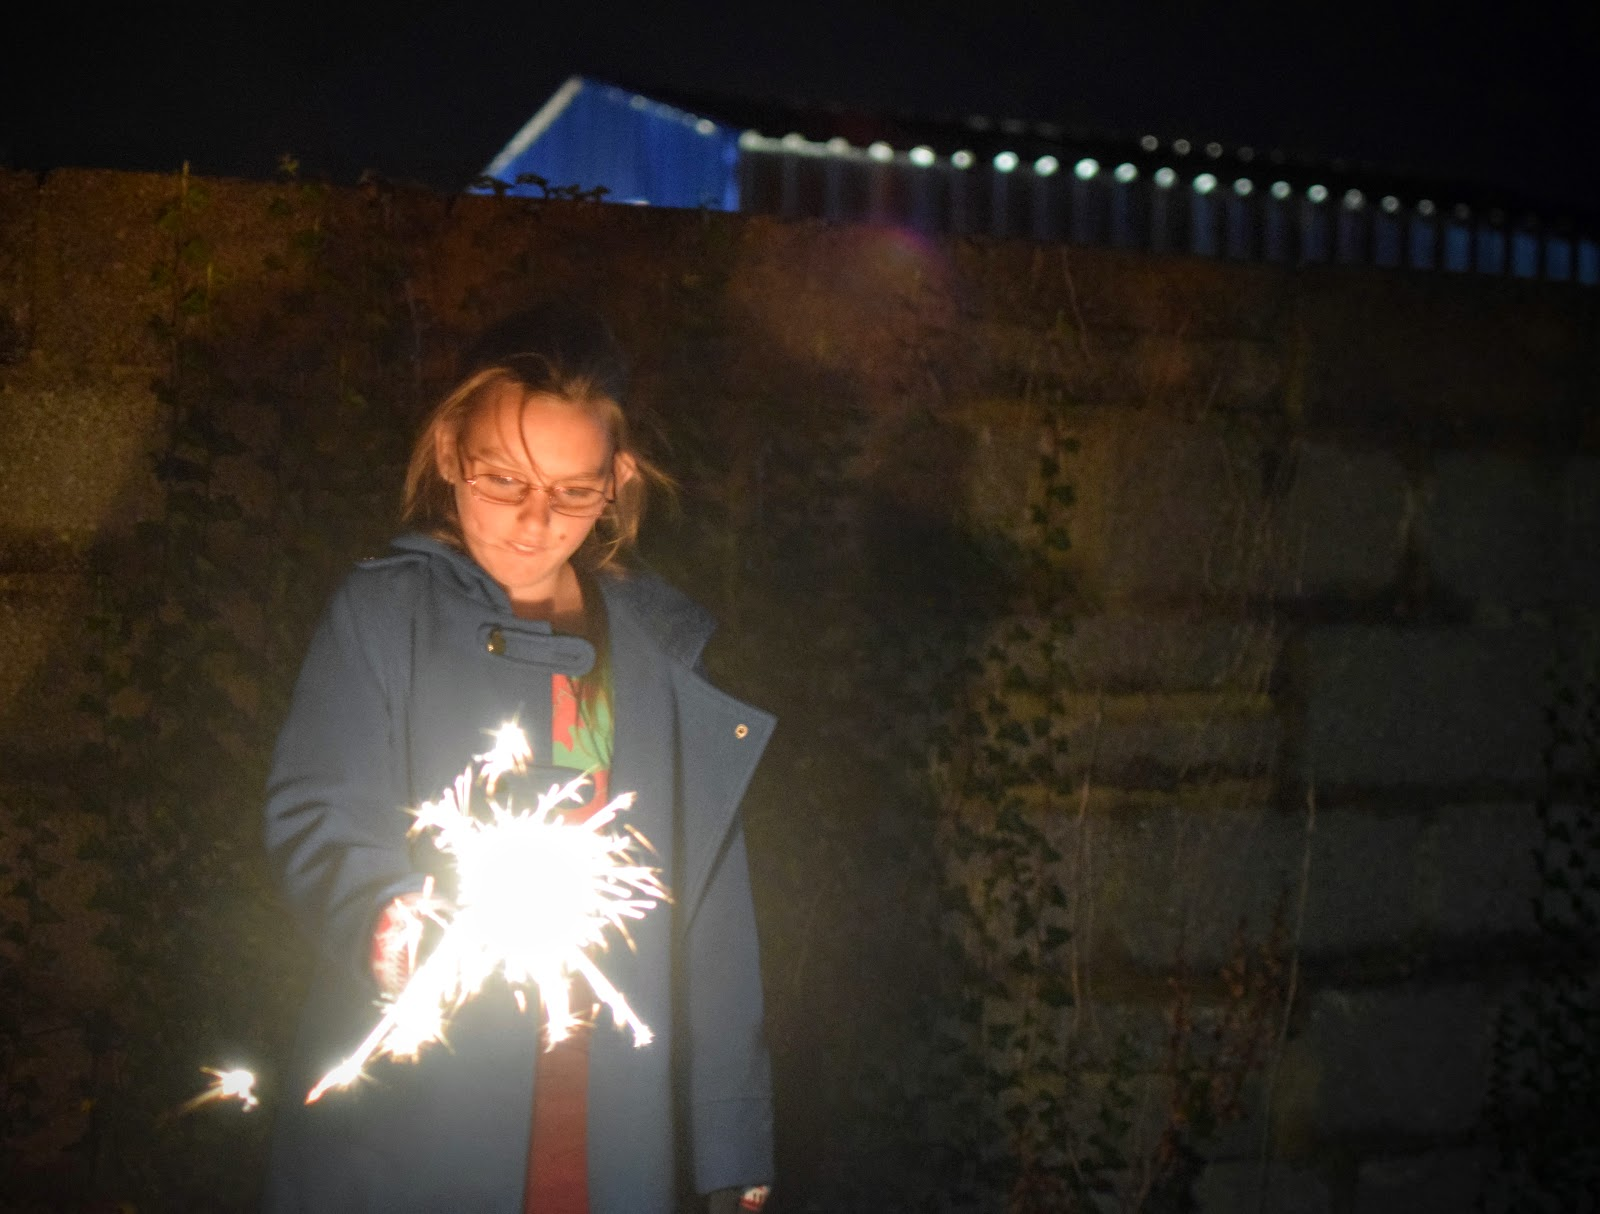 , Bonfire (Guy Fawkes) Night 5th November 2016- Fireworks, Sparklers and Hot Chocolate